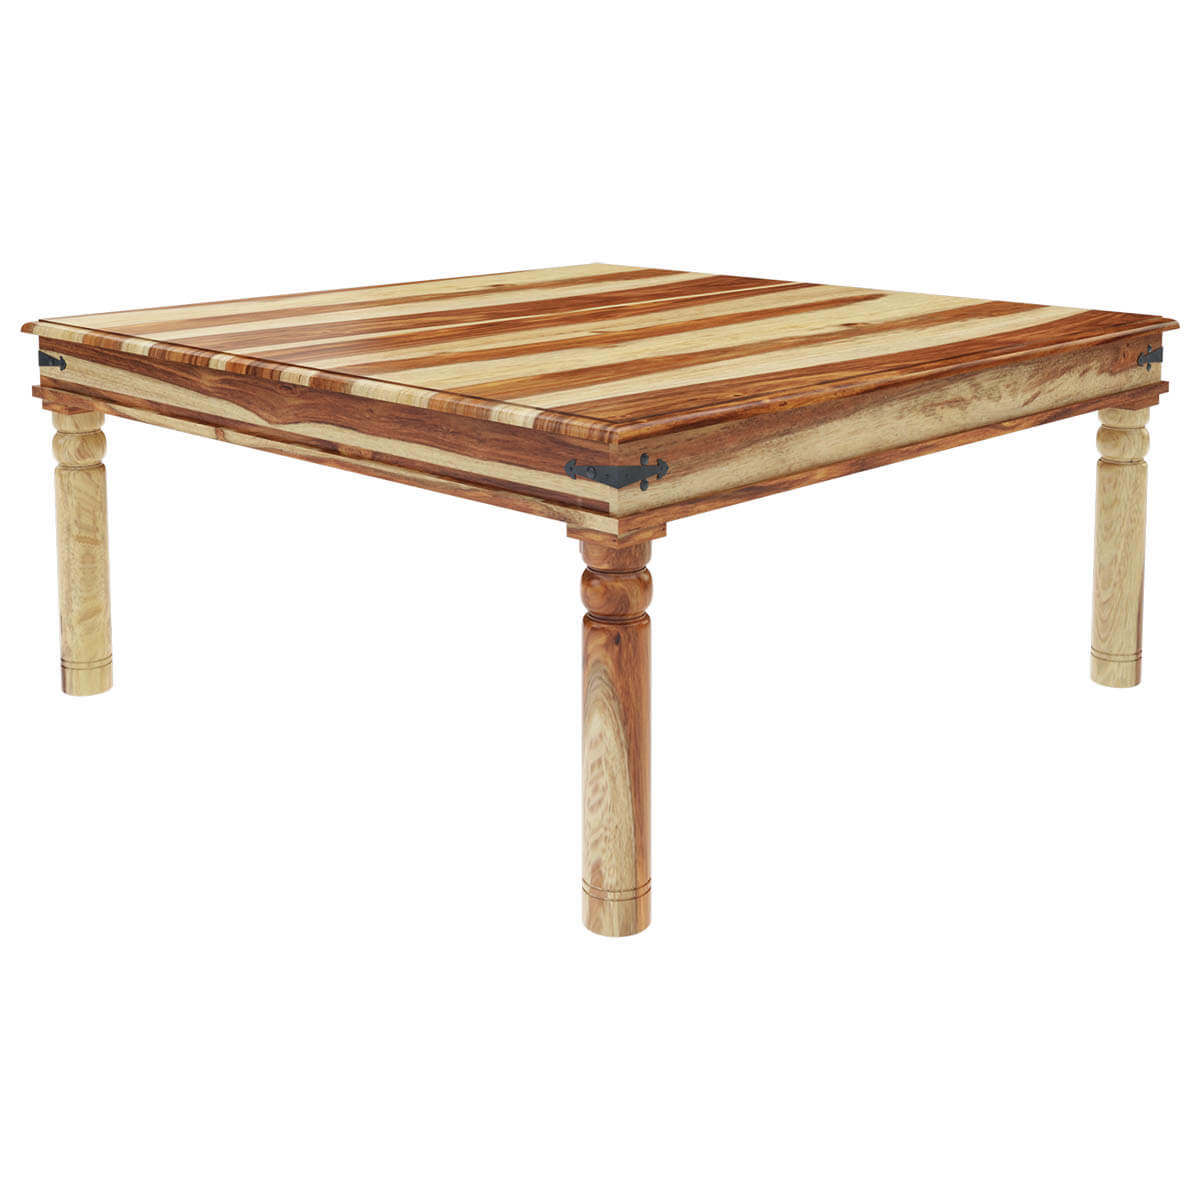 Peoria rustic solid wood square dining table for Solid wood dining table